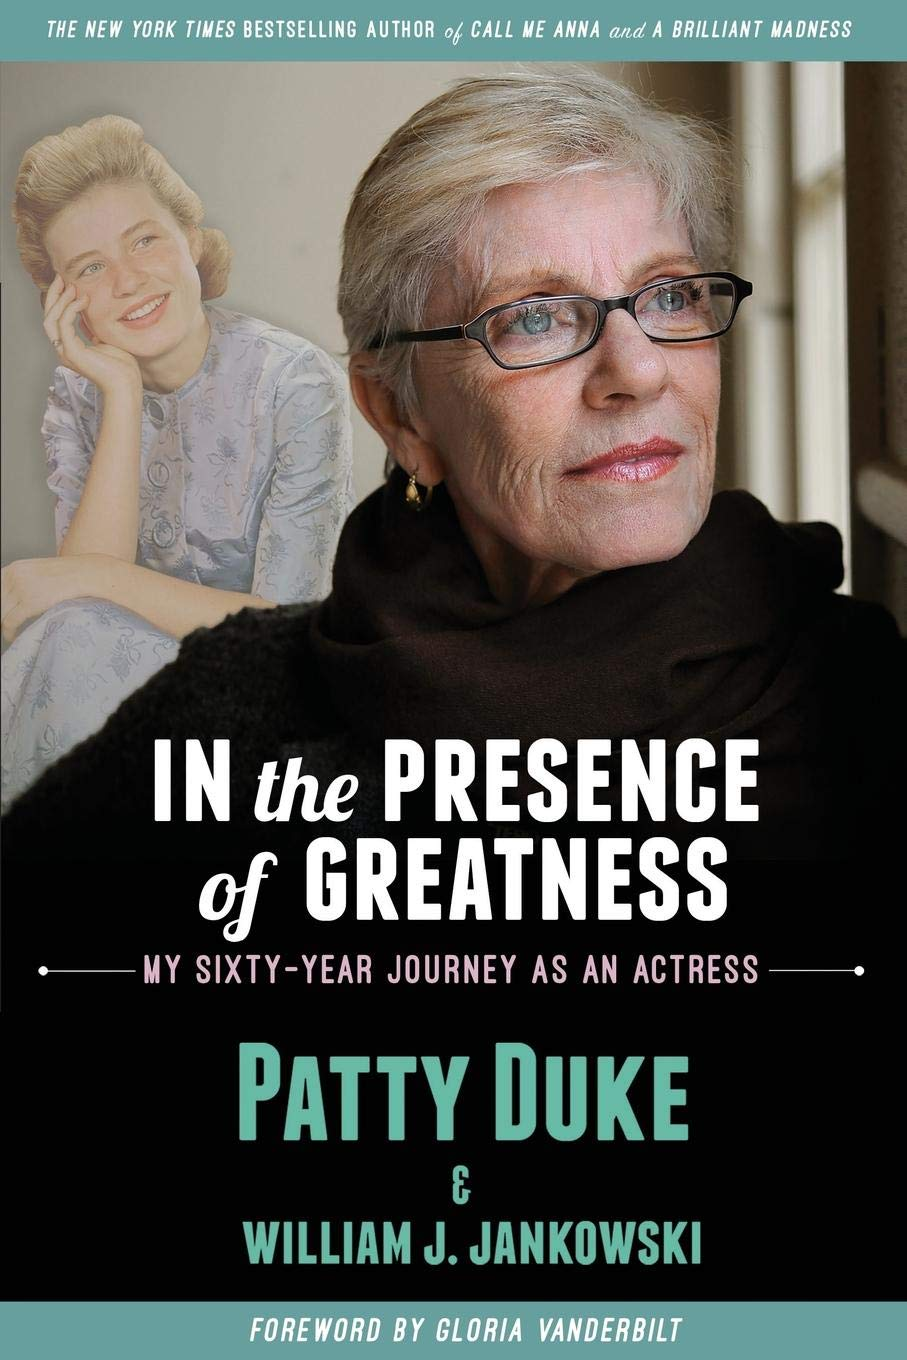 IN THE PRESENCE OF GREATNESS: My Sixty-Year Journey as an Actress PDF